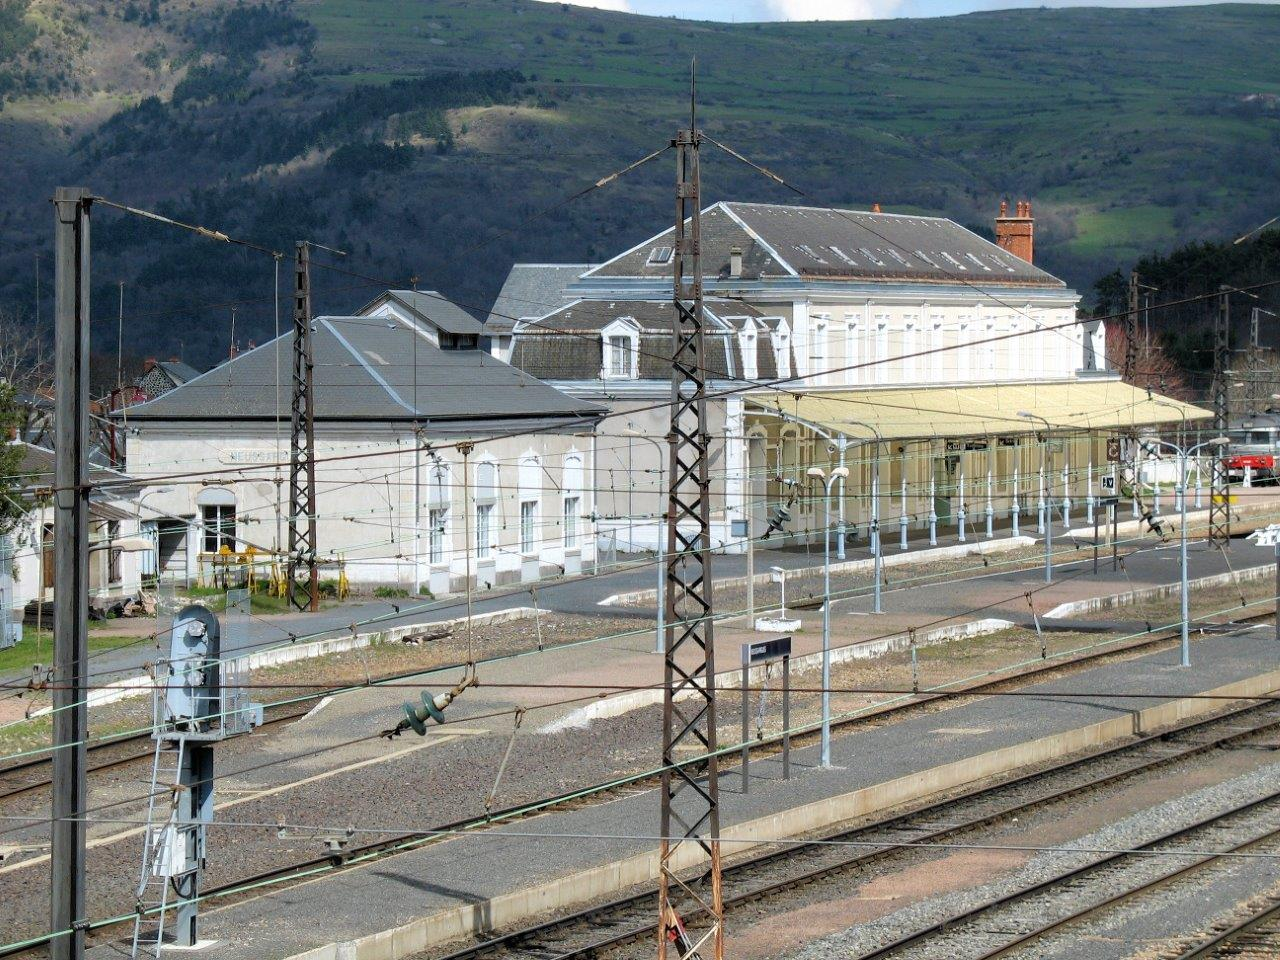 gare-de-neussargues-train-station